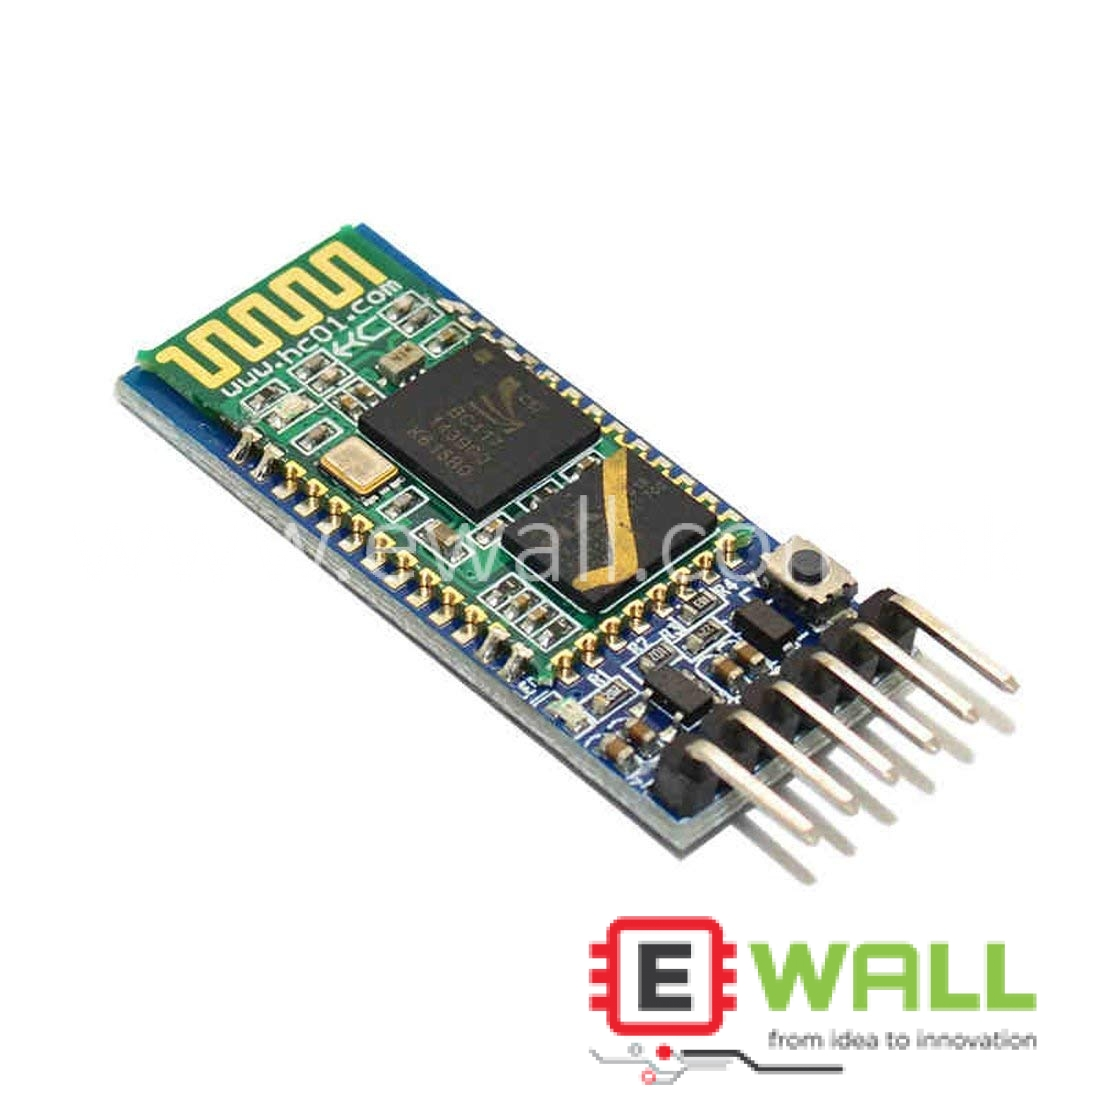 HC-05 6 Pin Wireless Bluetooth RF Transceiver Module Serial BT Module Arduino